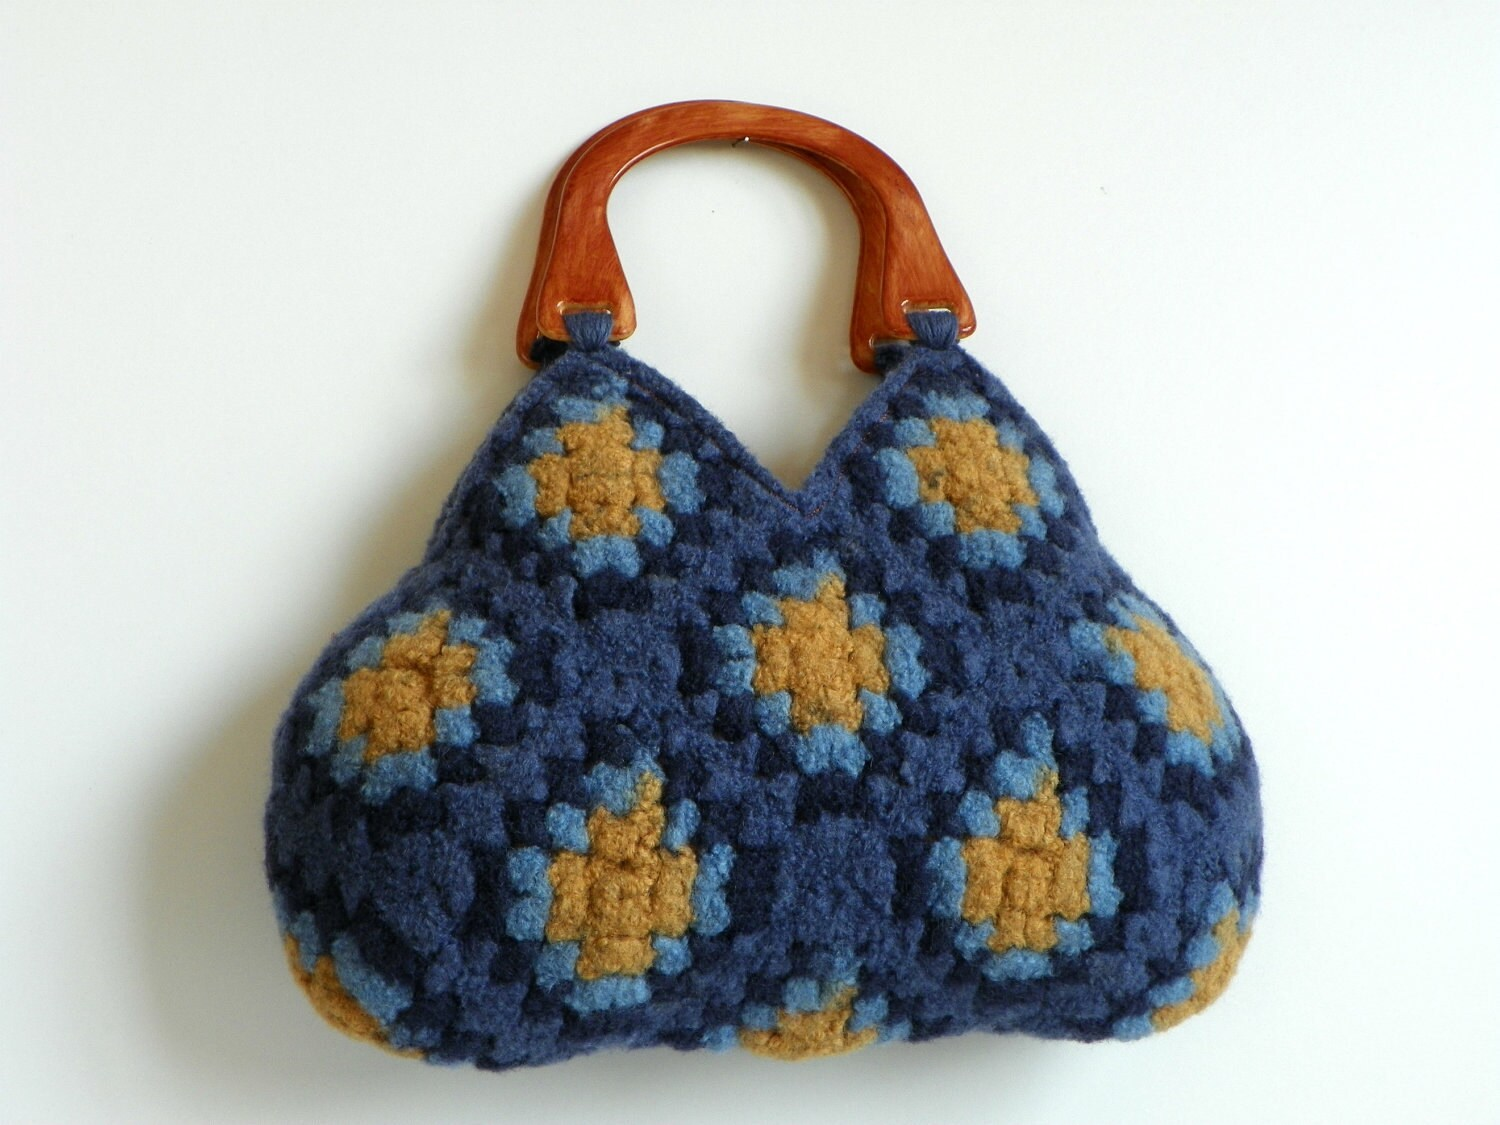 Woolen Crochet Purse : Items similar to Crochet felt bag NzLbags, Felted Wool Crochet Granny ...